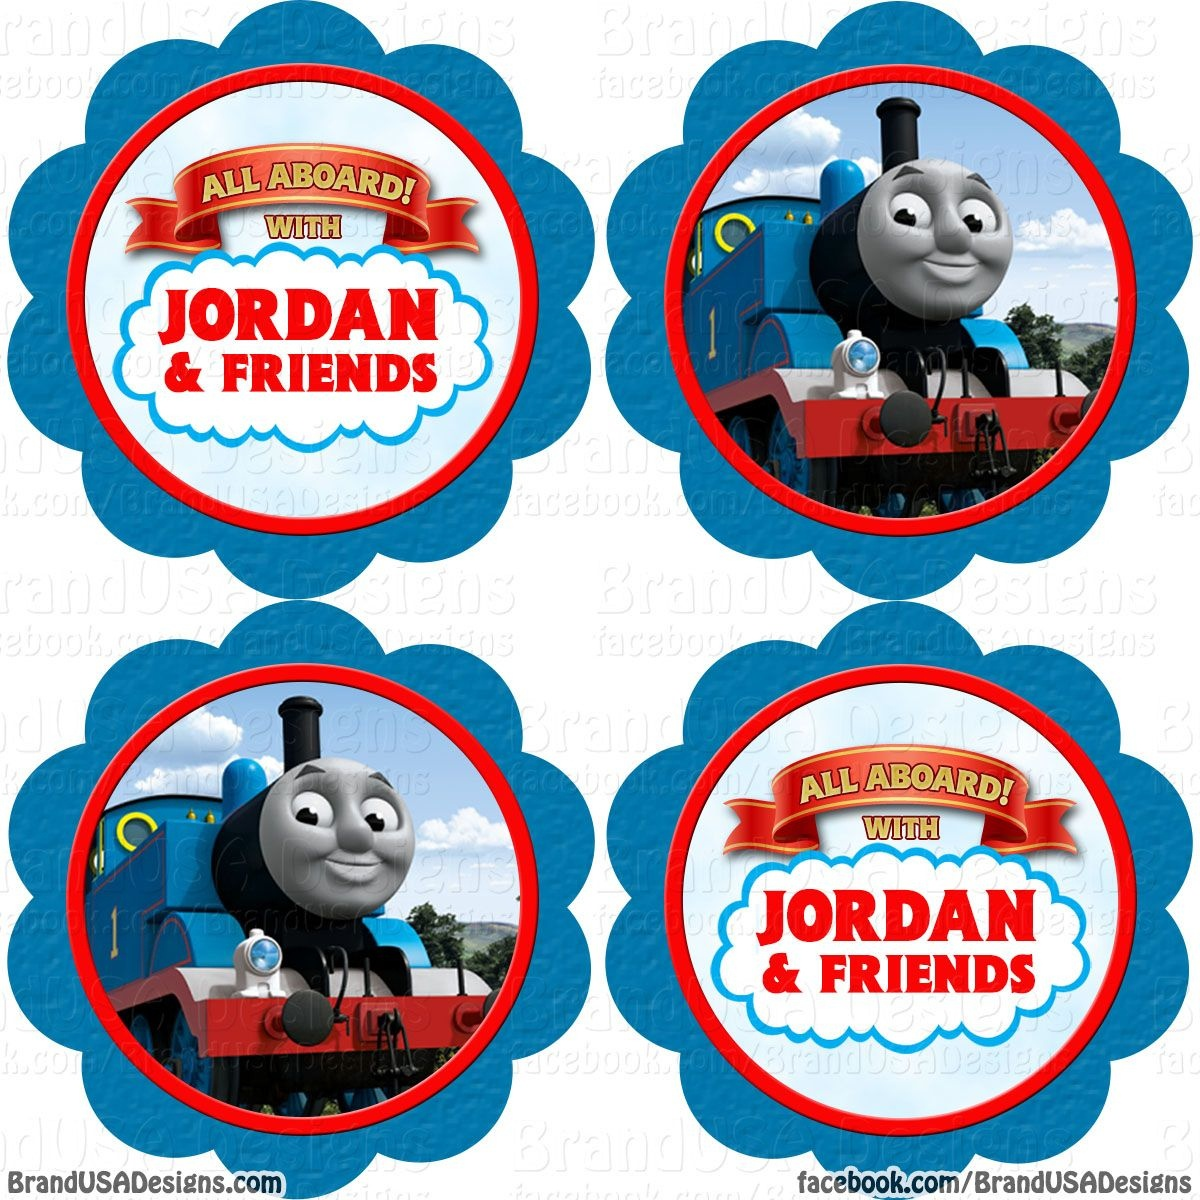 Free Printable Thomas The Train Cup Cake Toppers - Google Search - Free Printable Thomas The Train Cupcake Toppers